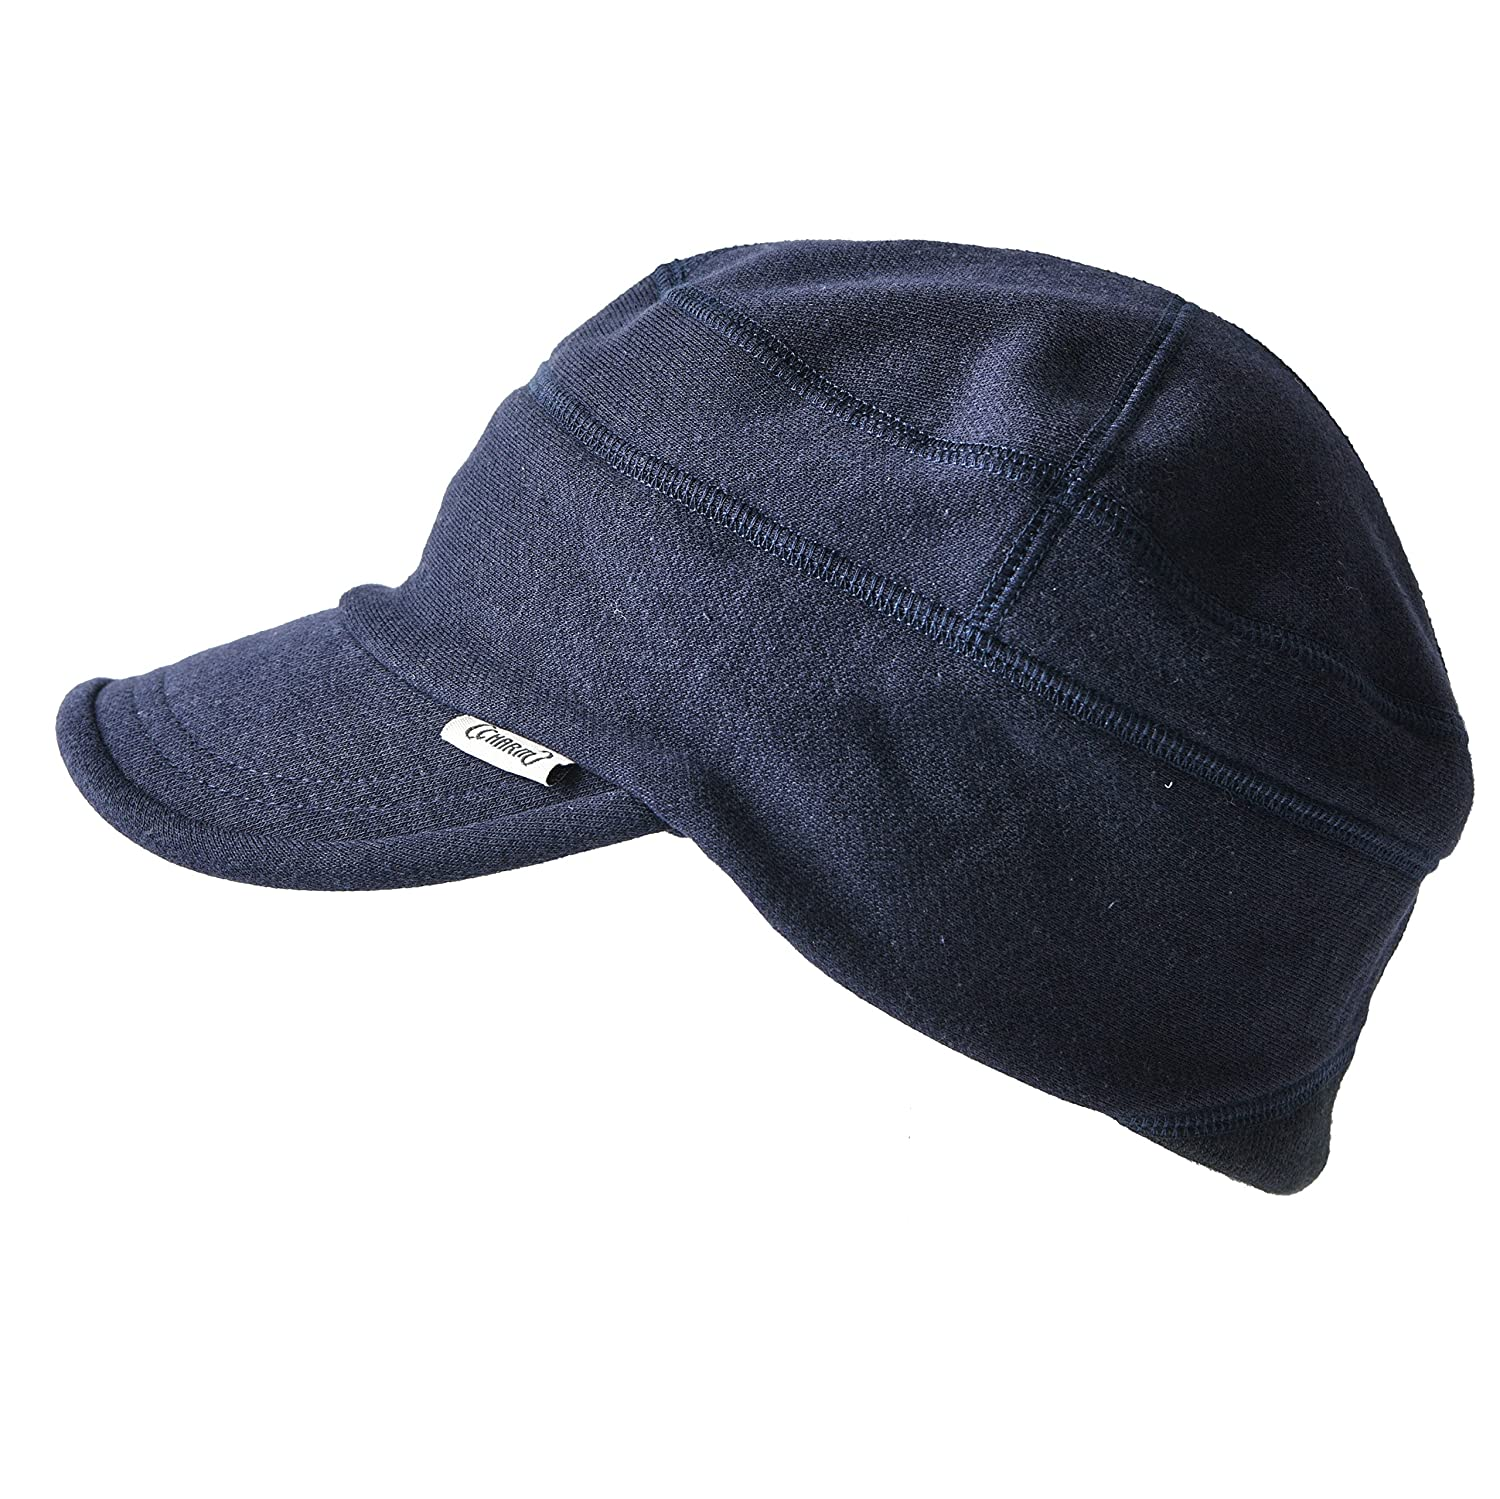 Casualbox Mens Cotton Sun Hat Visor UV Sweat Absorbing Summer Unisex 4589777968981